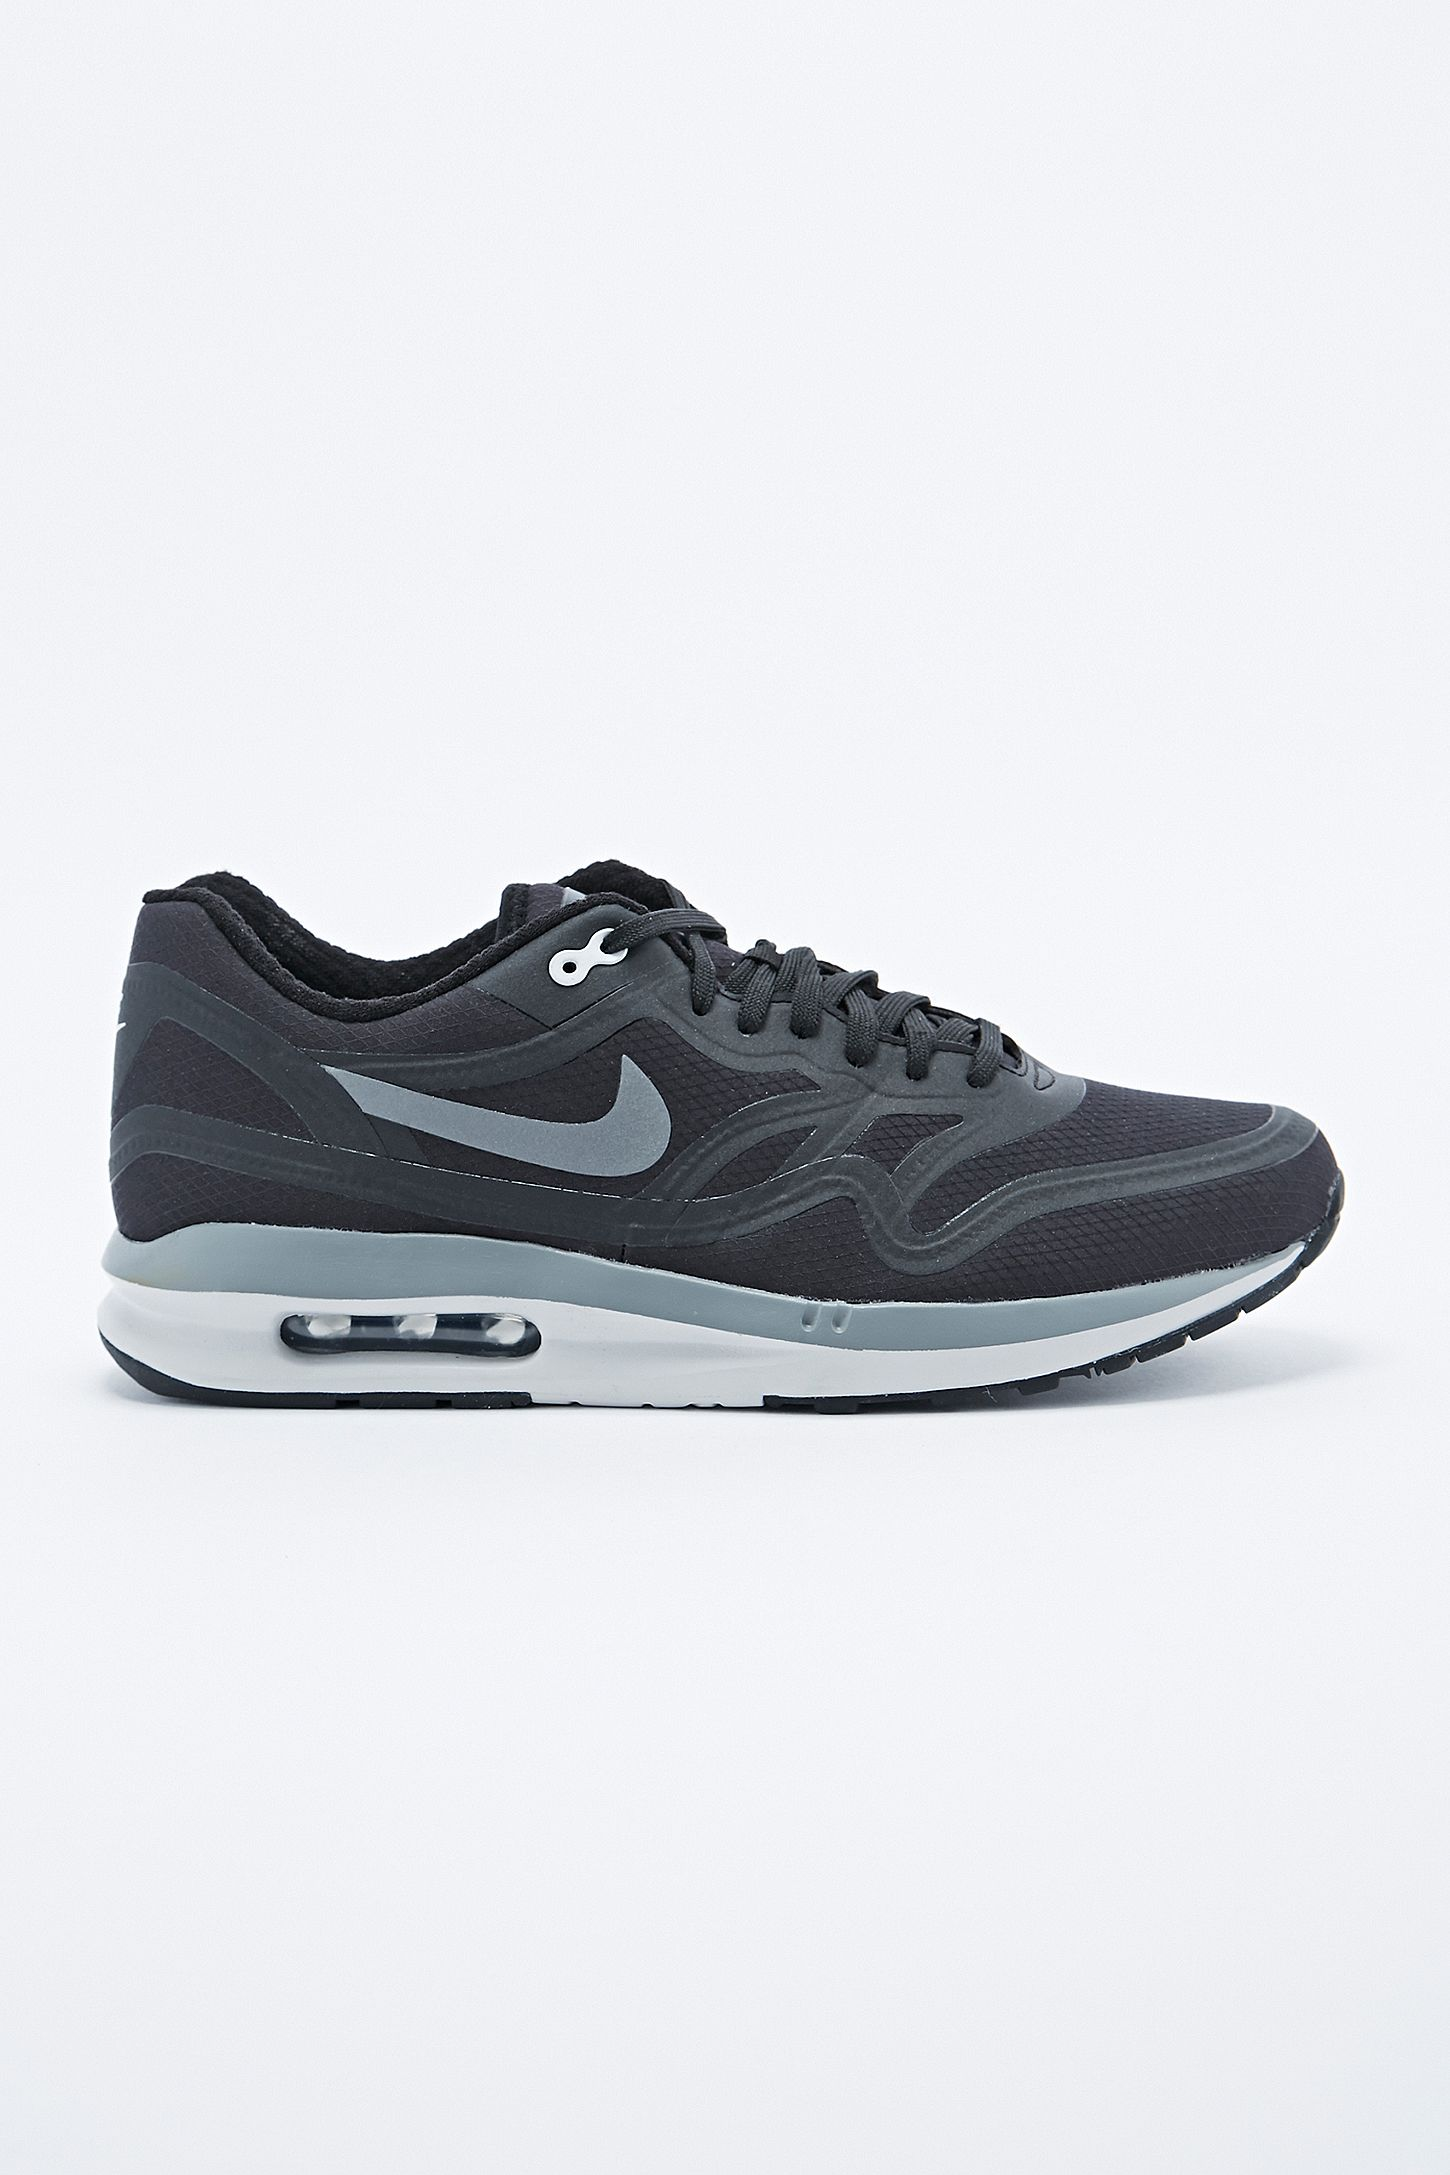 55de084e99 Nike Air Max 1 Lunar Water Resistant Trainers in Black | Urban ...